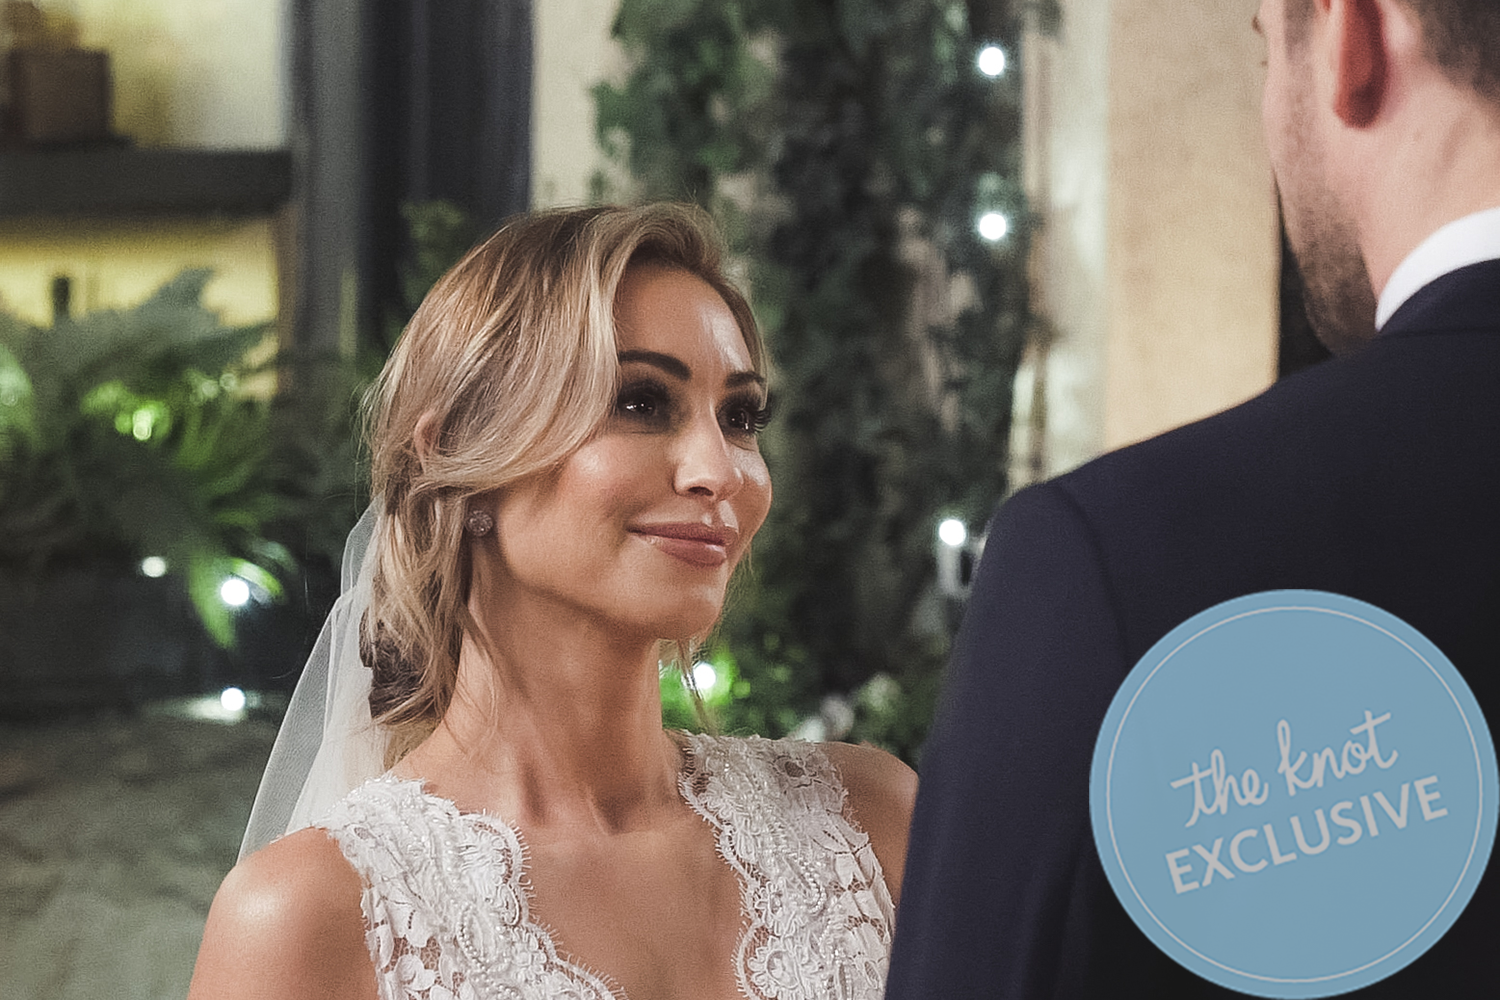 marcus grodd marries ally lutar in vancouver wedding  exclusive photos